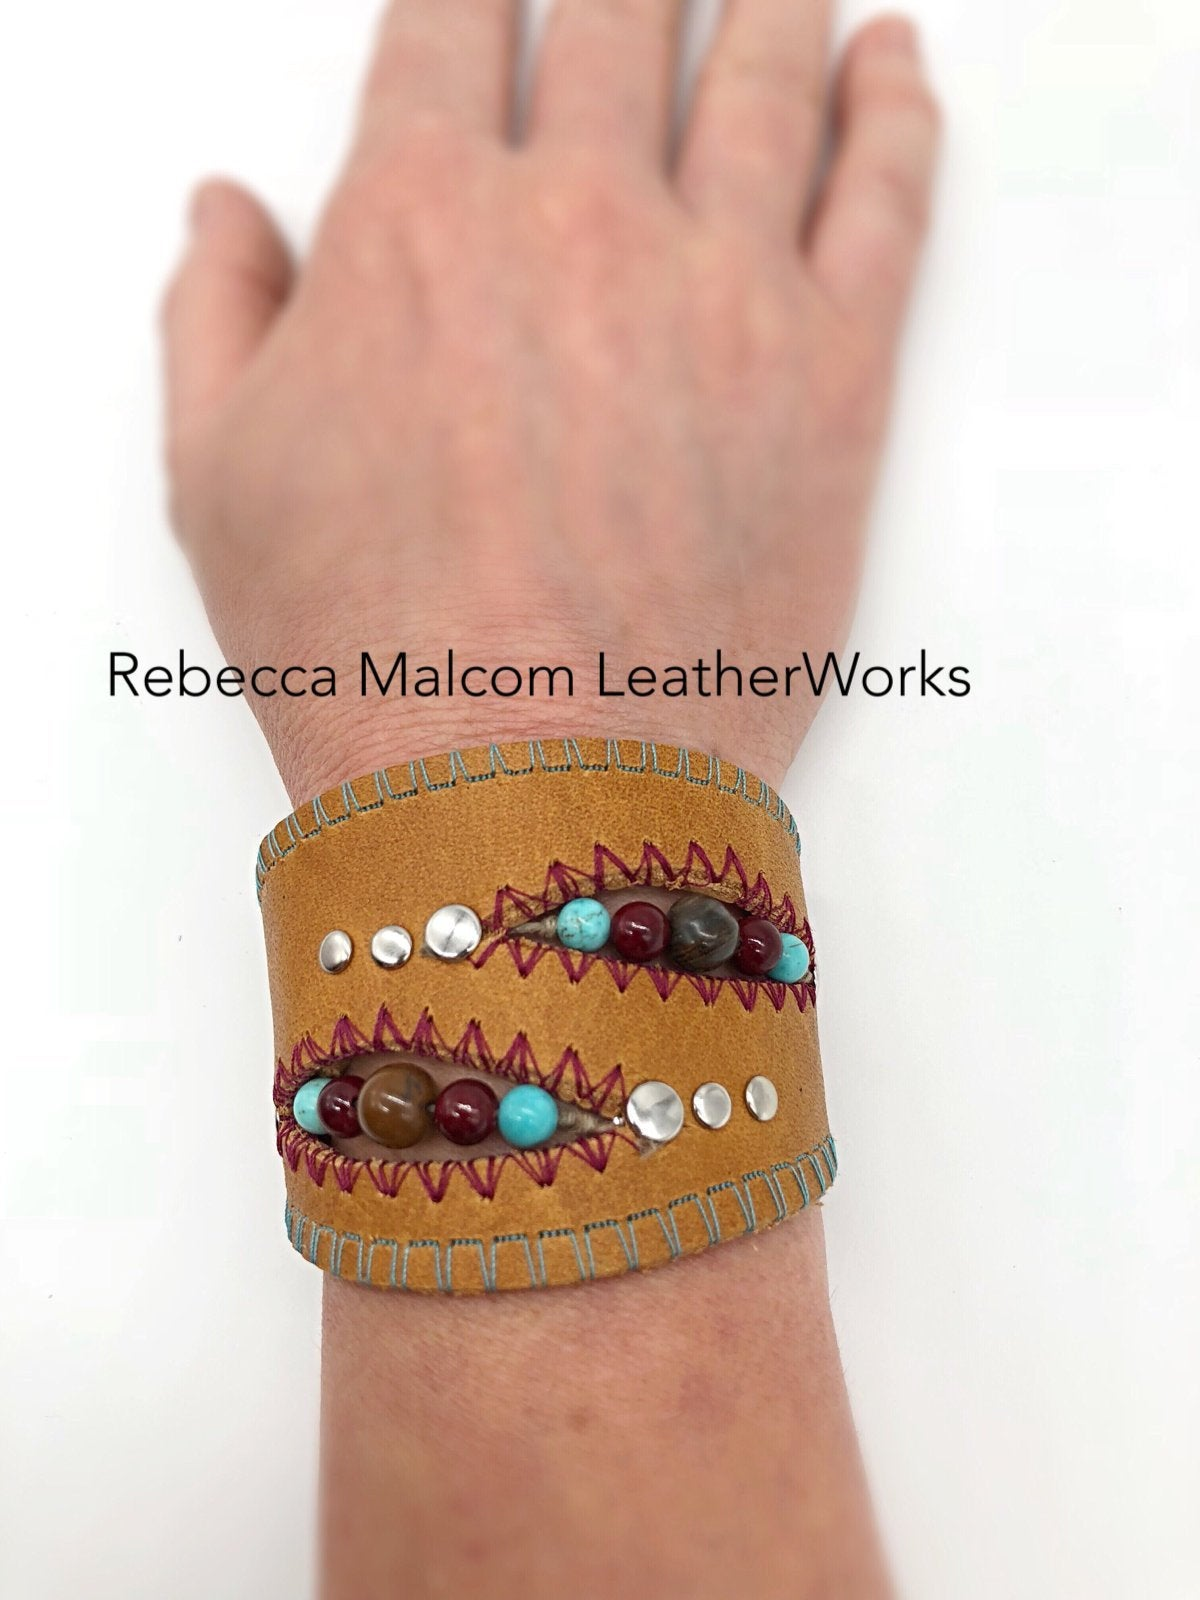 Womens Boho Cuff, Womens Leather Cuff, Boho Leather Cuff, Girls Leather Cuff, Womens Boho Leather Cuff, Boho Chic Cuff, Wide Leather Cuff